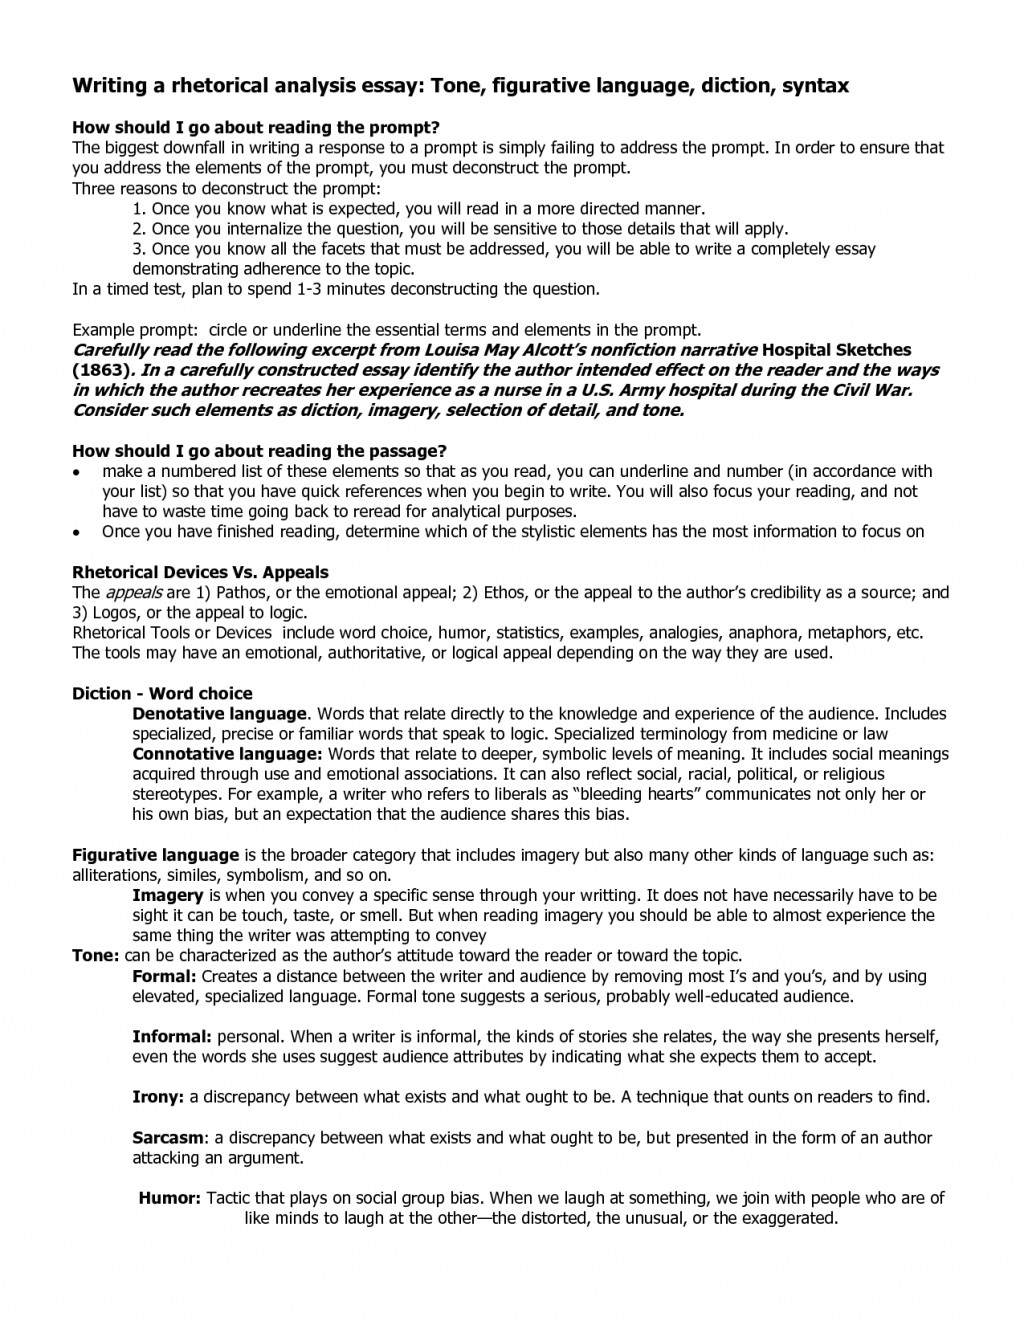 004 4v5jglfvmn Essay Example Check My Top Free For Punctuation Errors Plagiarism Mac Paper Large